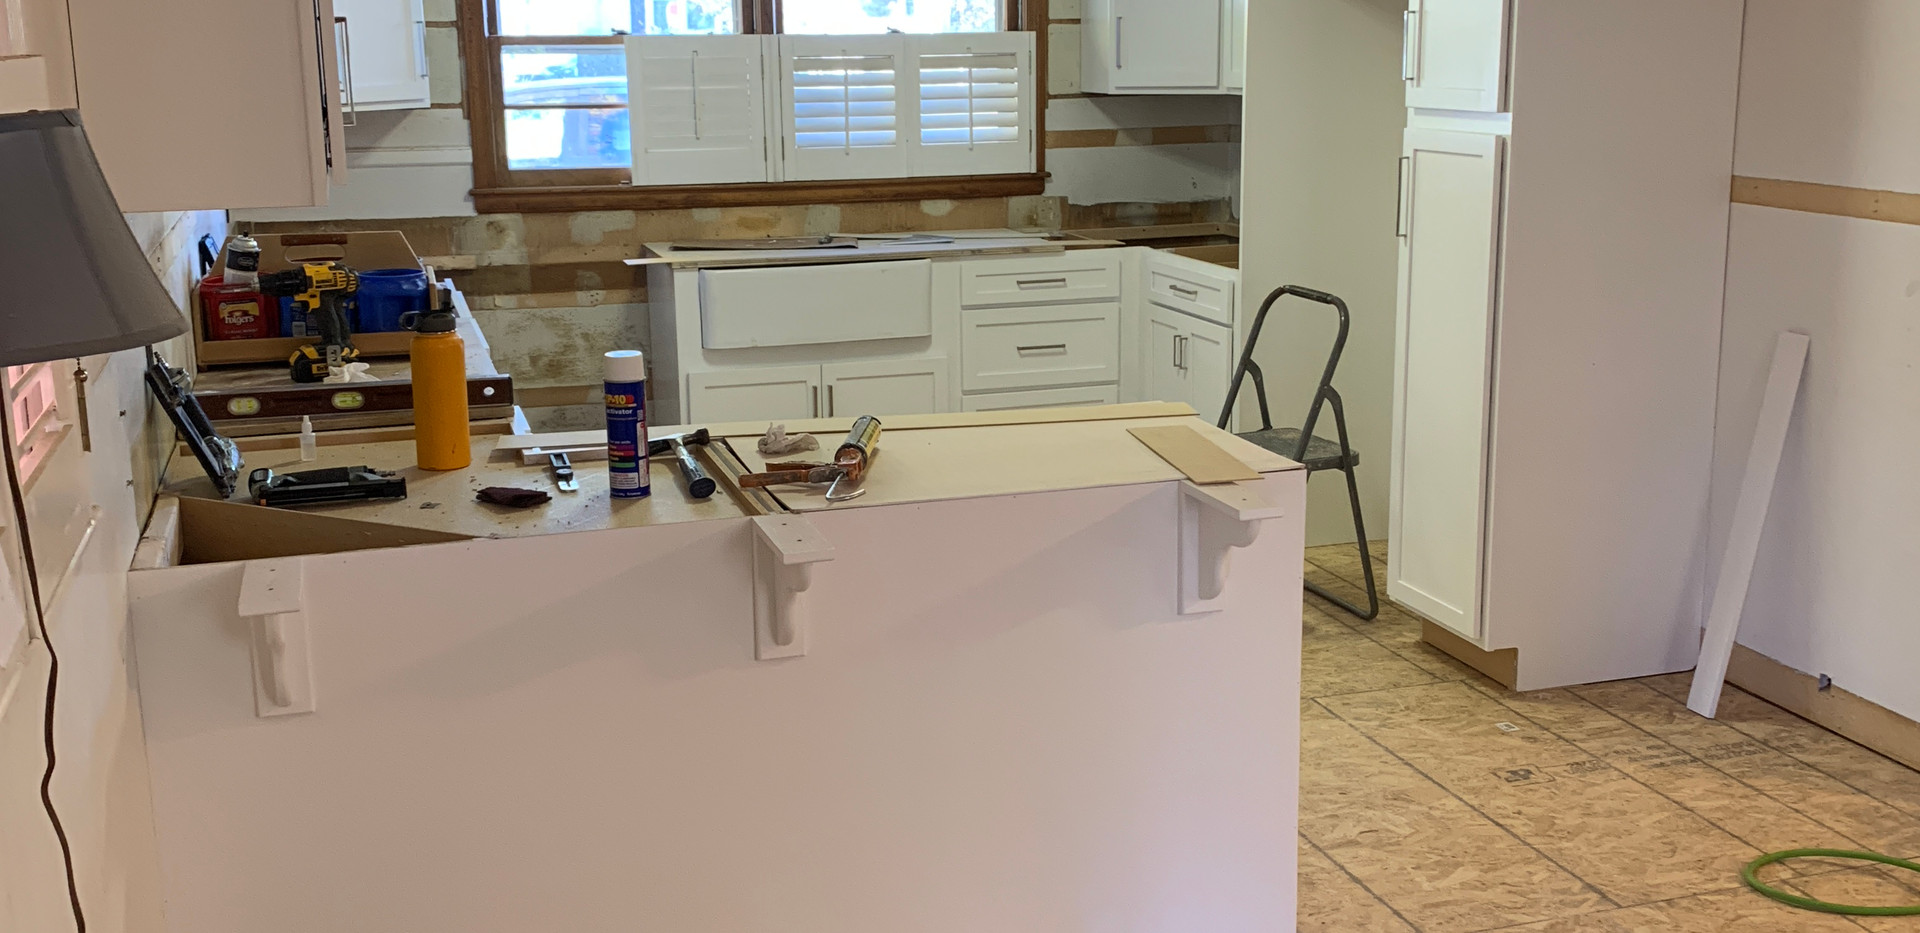 KItchen in Graham - BEFORE (16).JPG